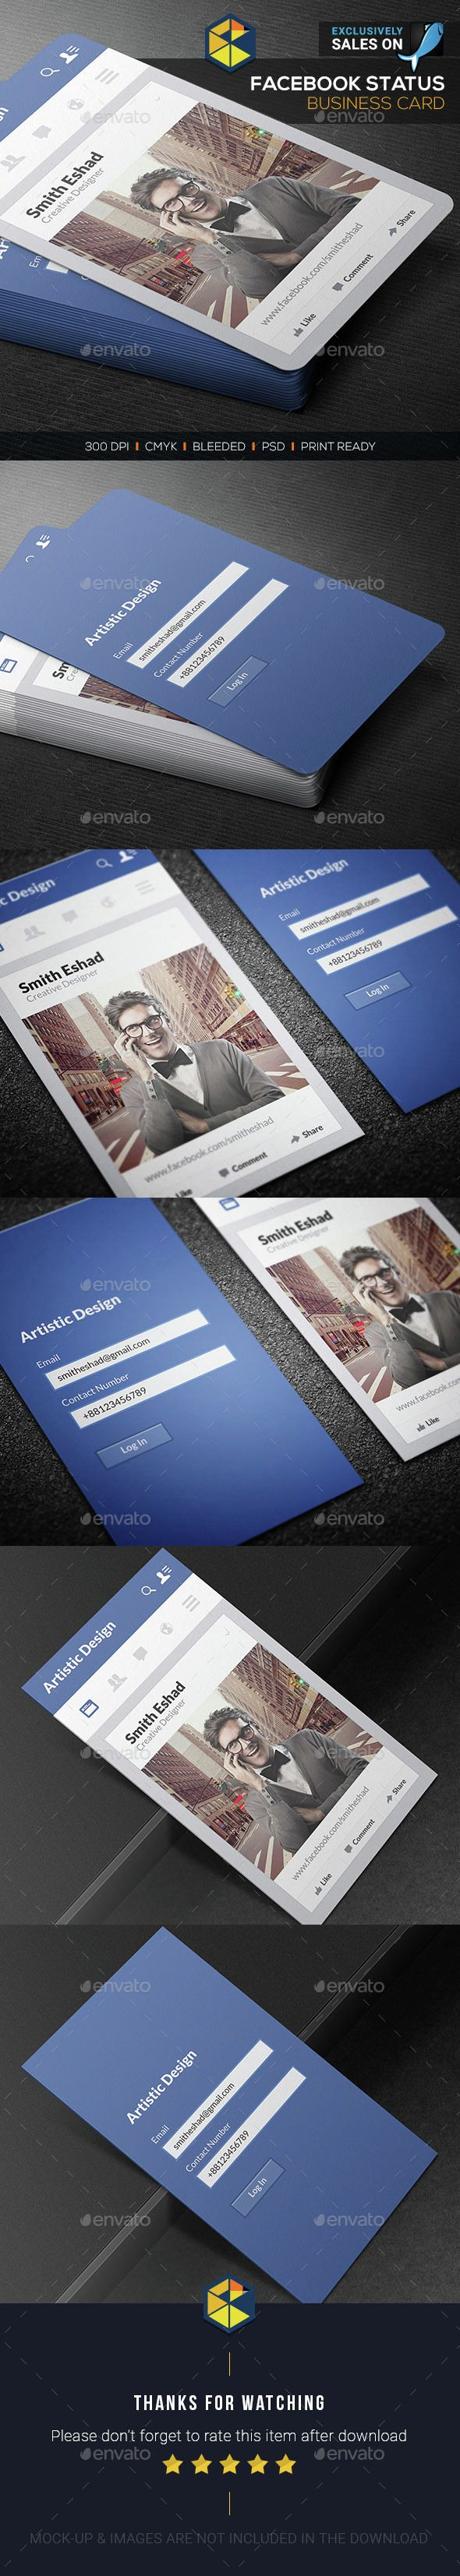 29 best Business Cards images on Pinterest   Print templates ...